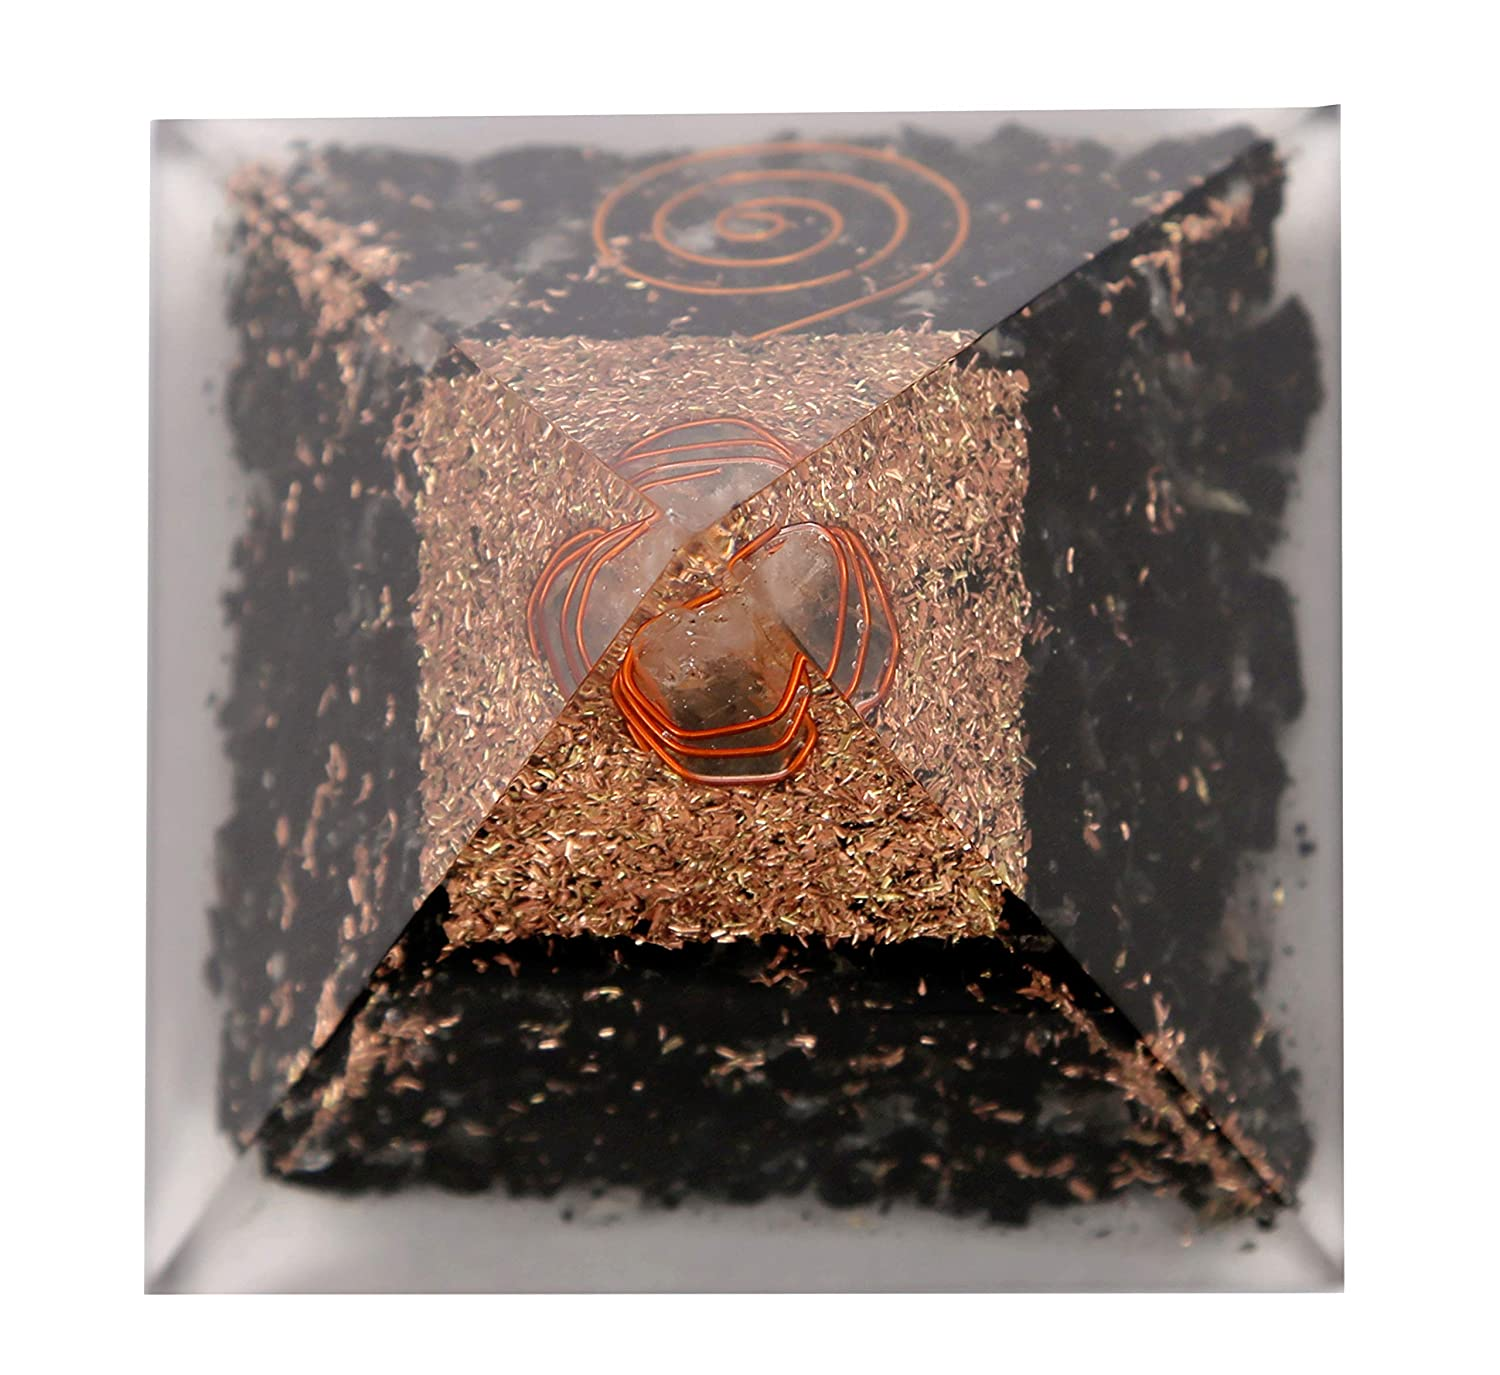 Aatm Energy Generator Black Tourmaline Orgone Pyramid for EMF Protection Chakra Healing Meditation with Crystal and Copper 3 and 3 inches